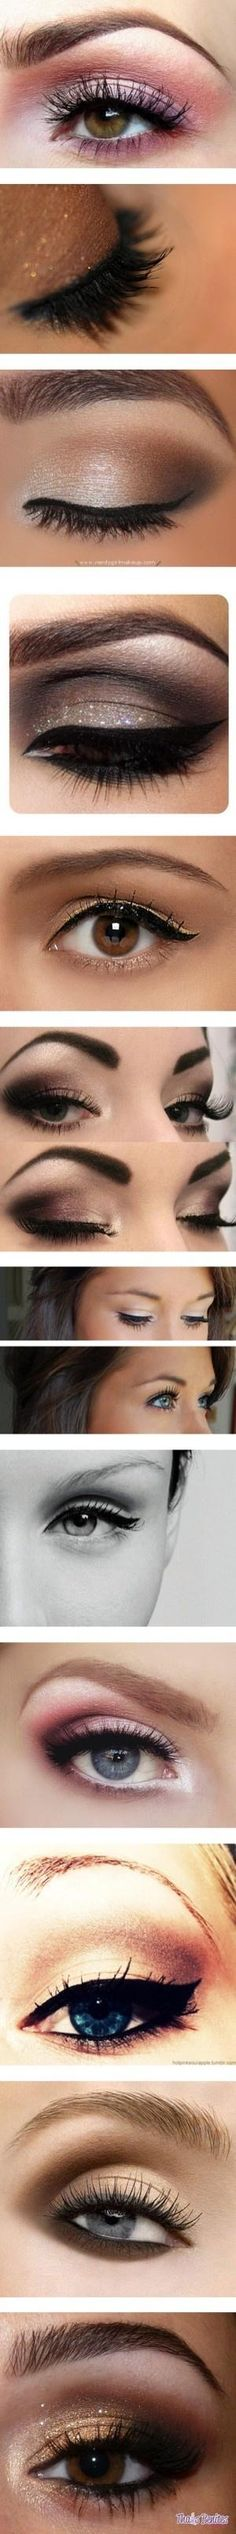 Beauty Tips, Fashion Trends and Styles - Page 2 of 23 - Pictures, Tutorials, Videos and How To's